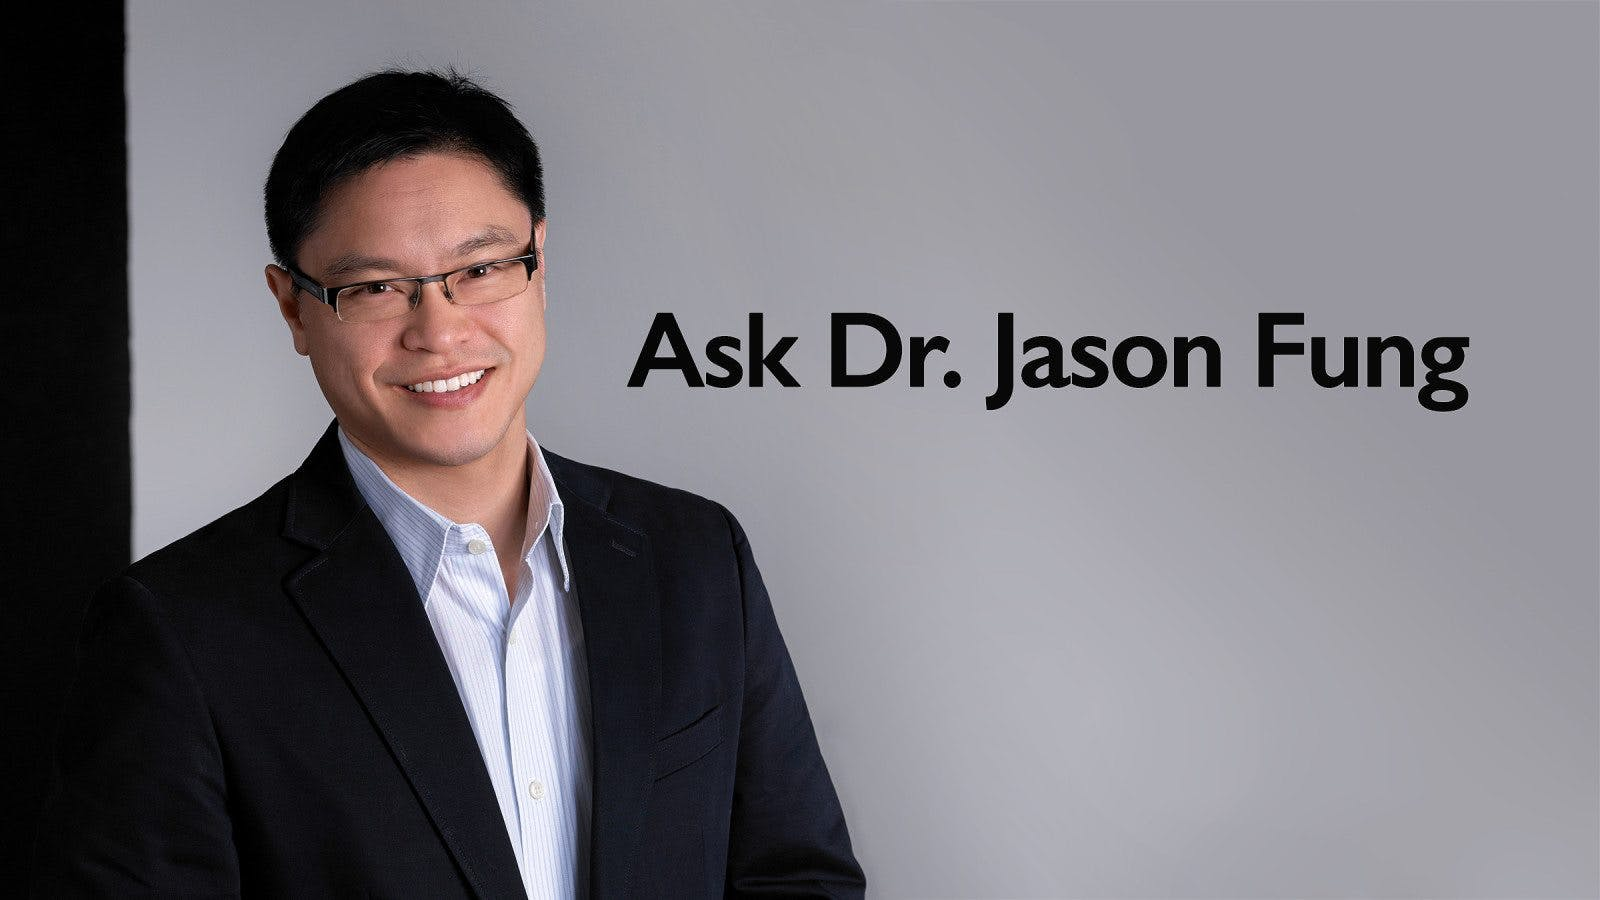 Ask-Dr-Jason-Fung2400txt31-1600x900